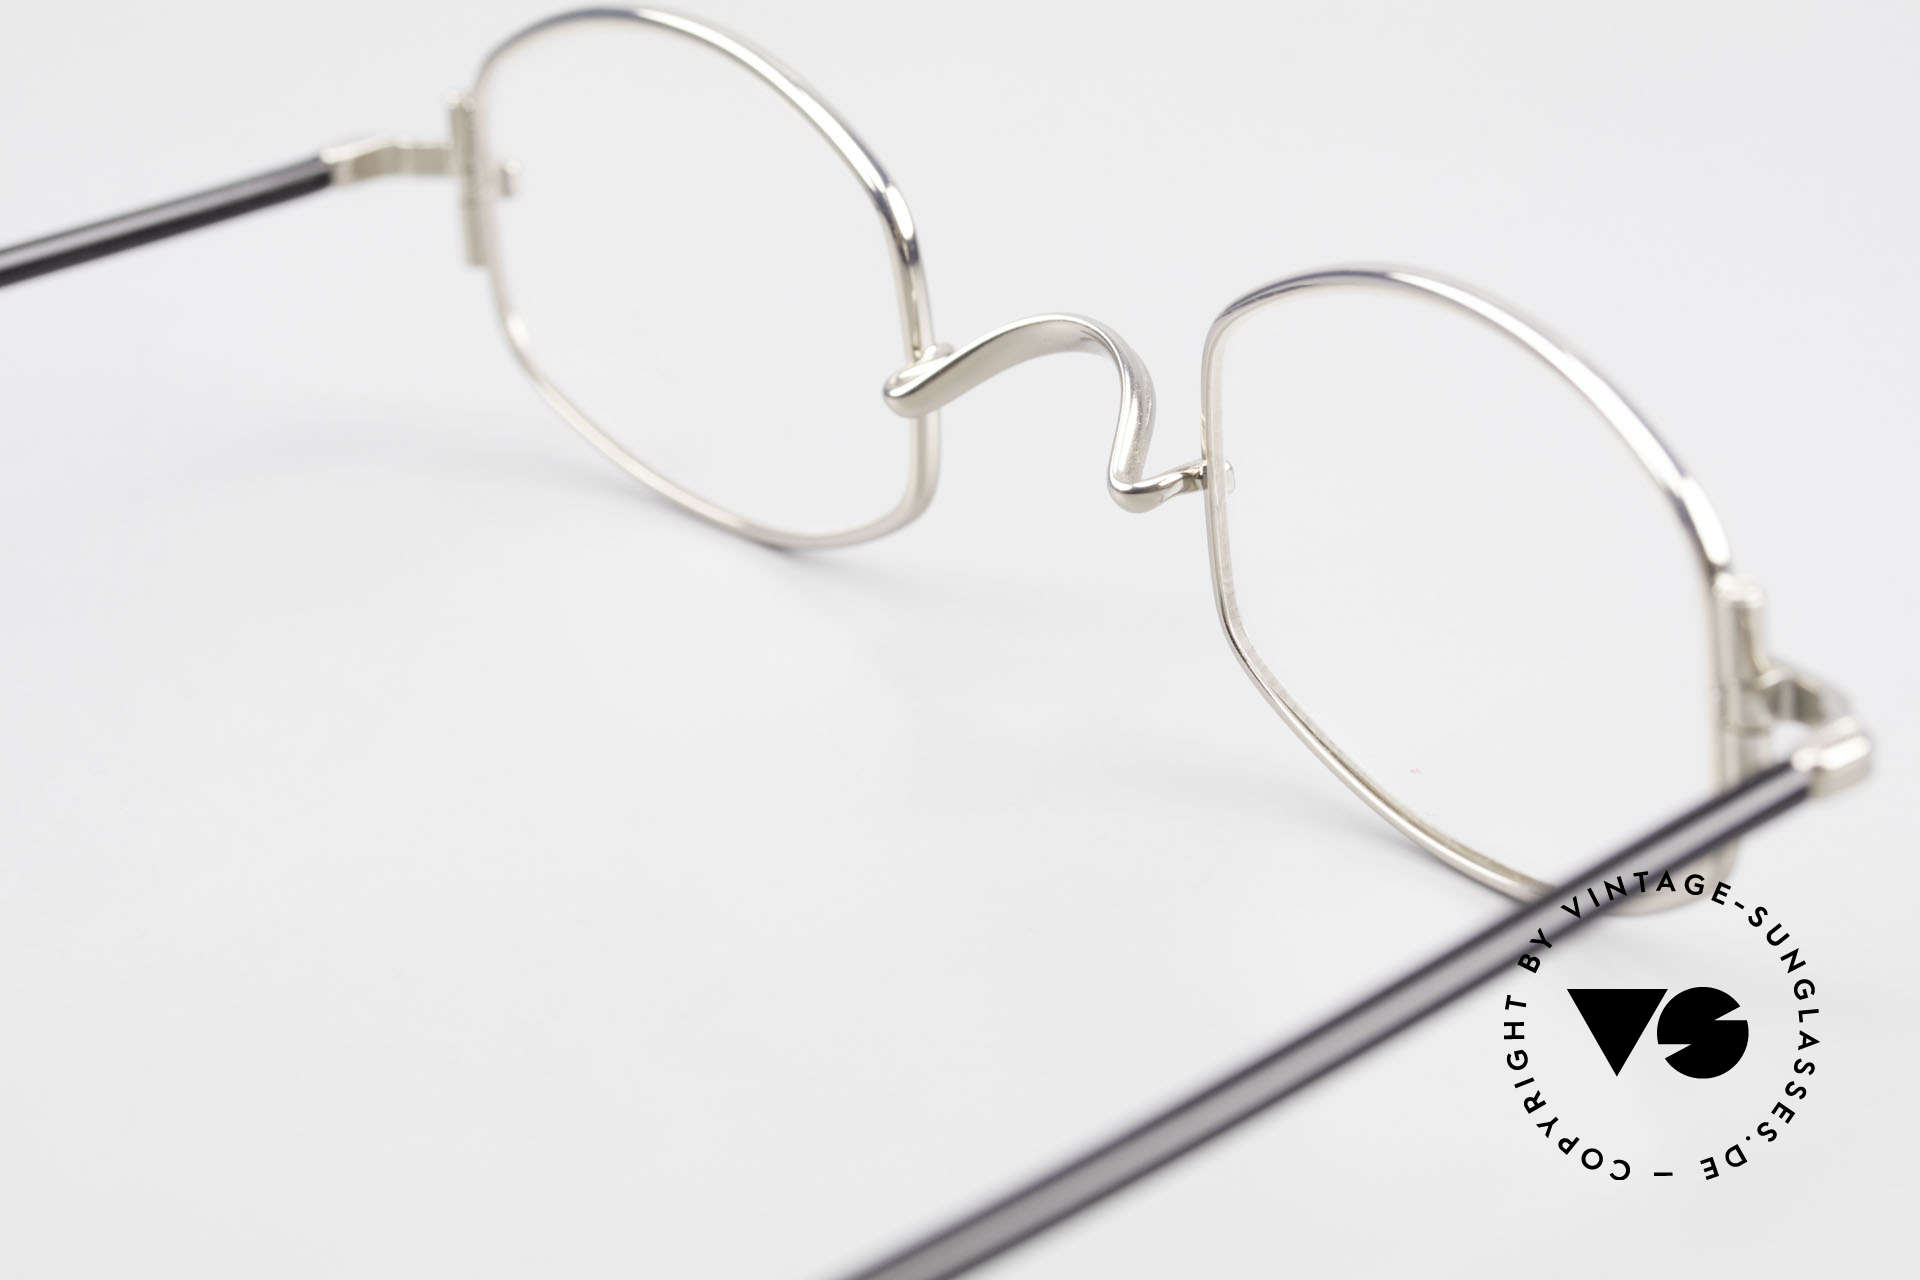 """Lunor XA 03 No Retro Lunor Glasses Vintage, the frame front / frame design looks like a """"LYING TON"""", Made for Men and Women"""